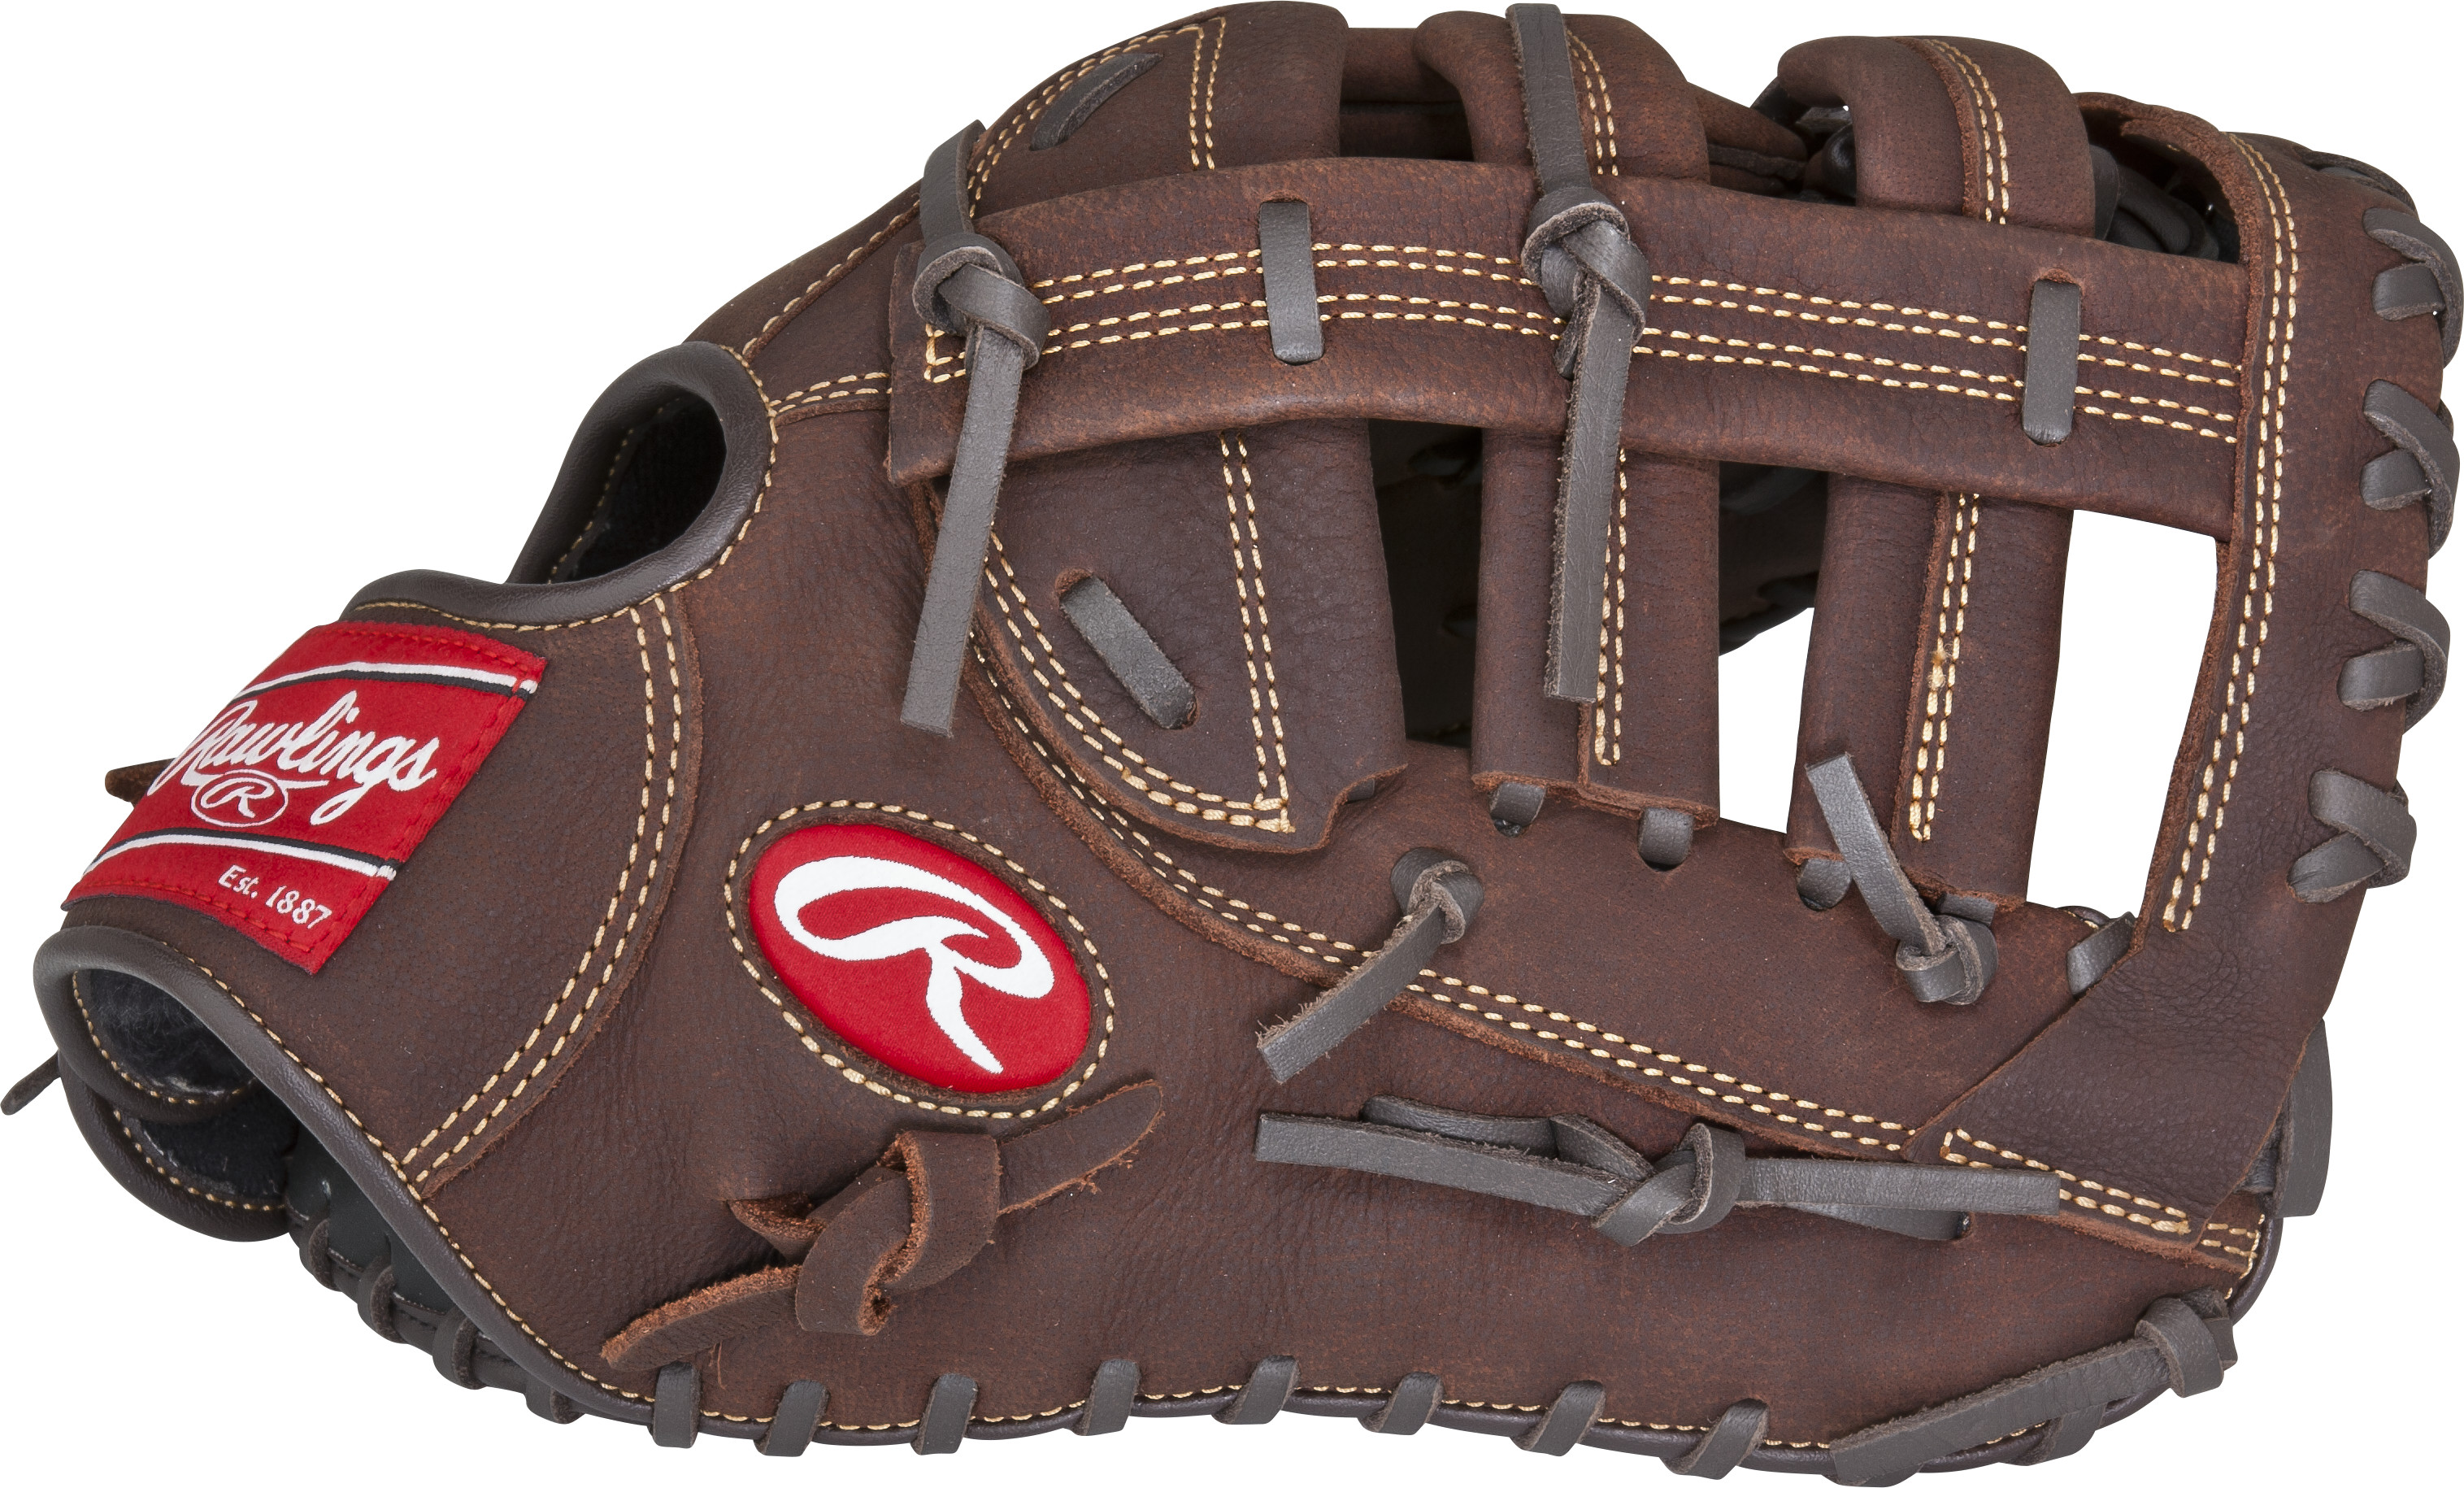 http://www.bestbatdeals.com/images/gloves/rawlings/PFBDCT_thumb.jpg